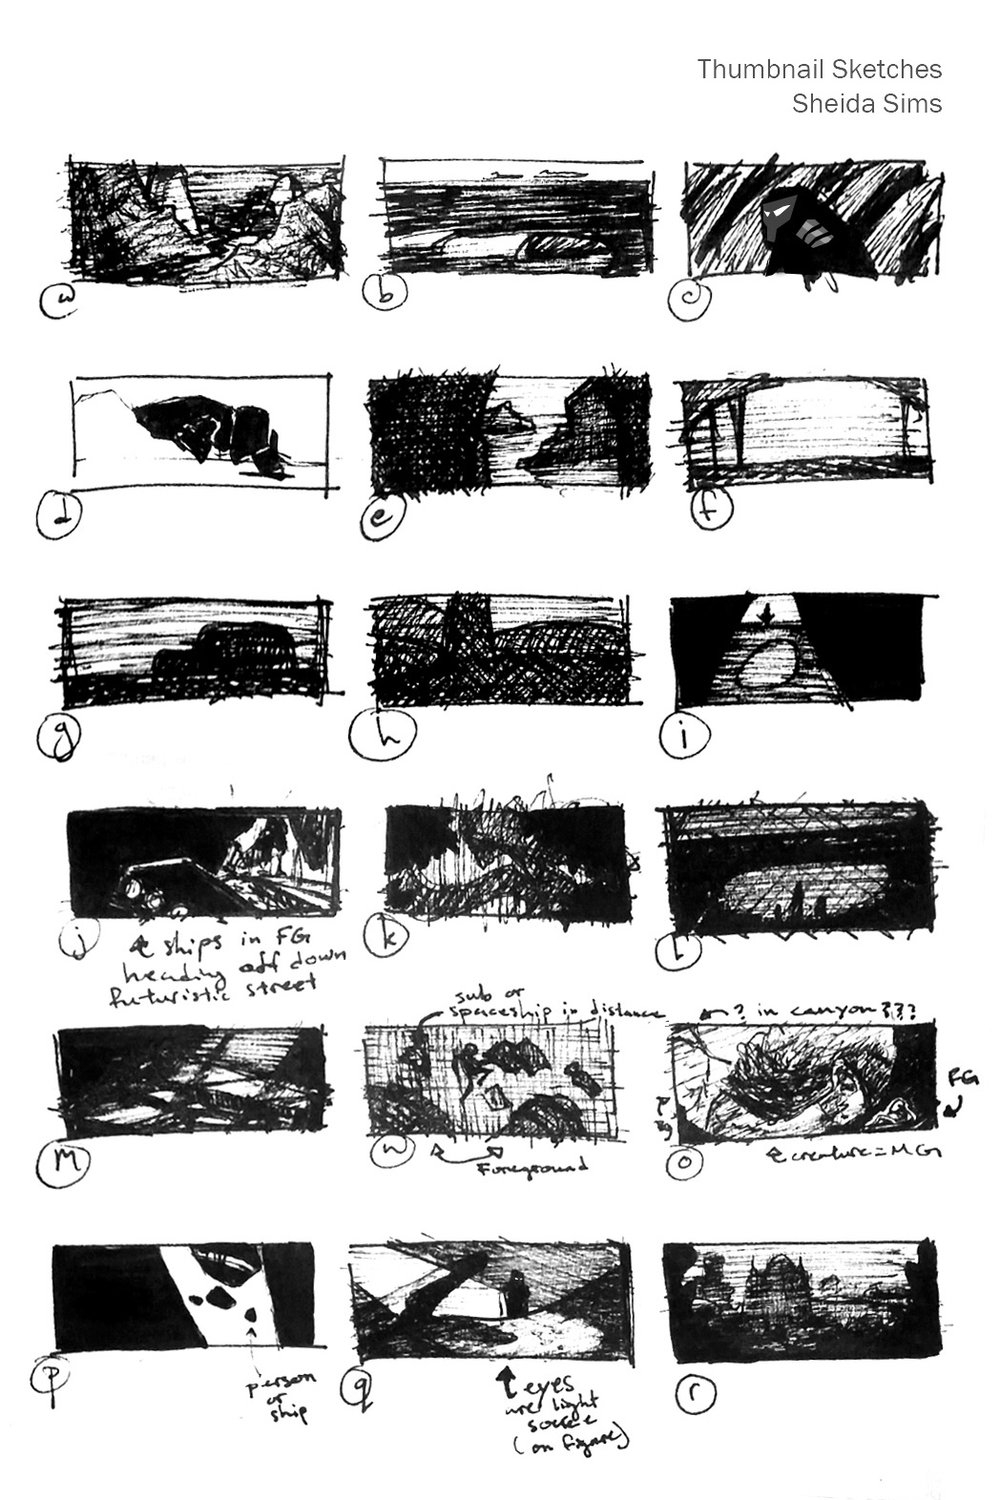 ThumbnailSketches_01_02_2016_02.jpg